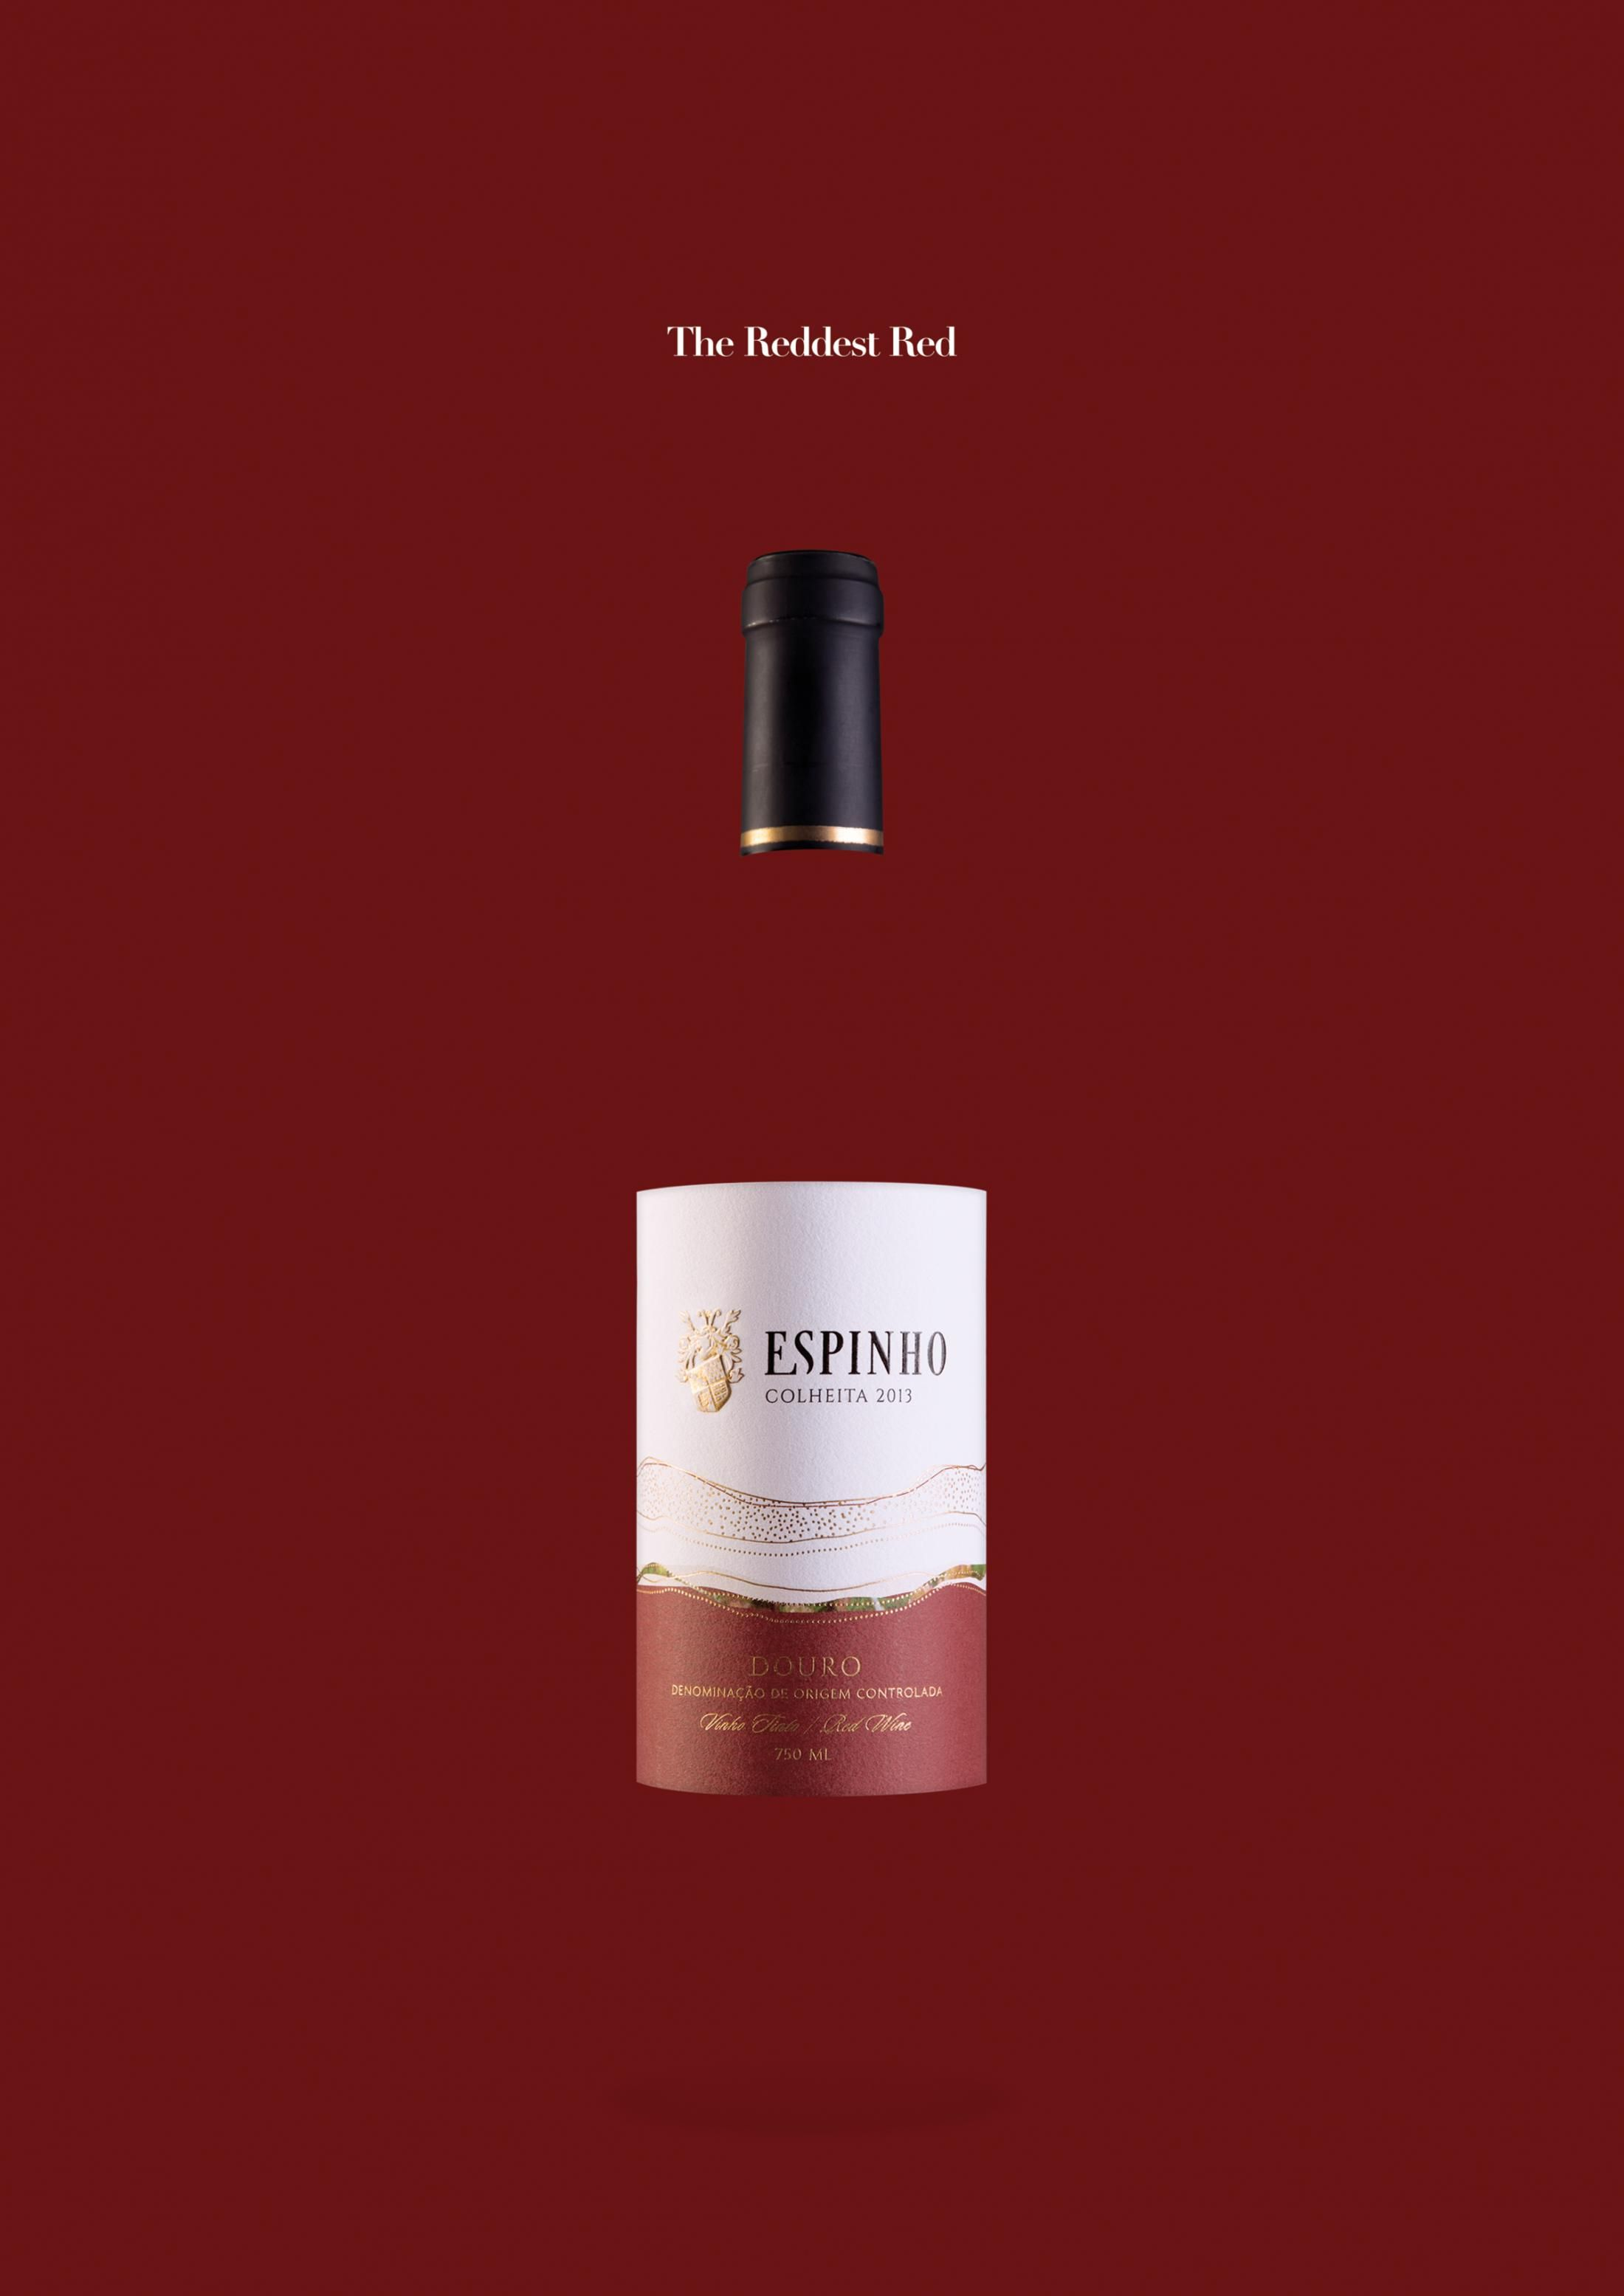 Pin By Graceooo Yeung On Alcohol Wine Advertising Wine Packaging Design Wine Bottle Design